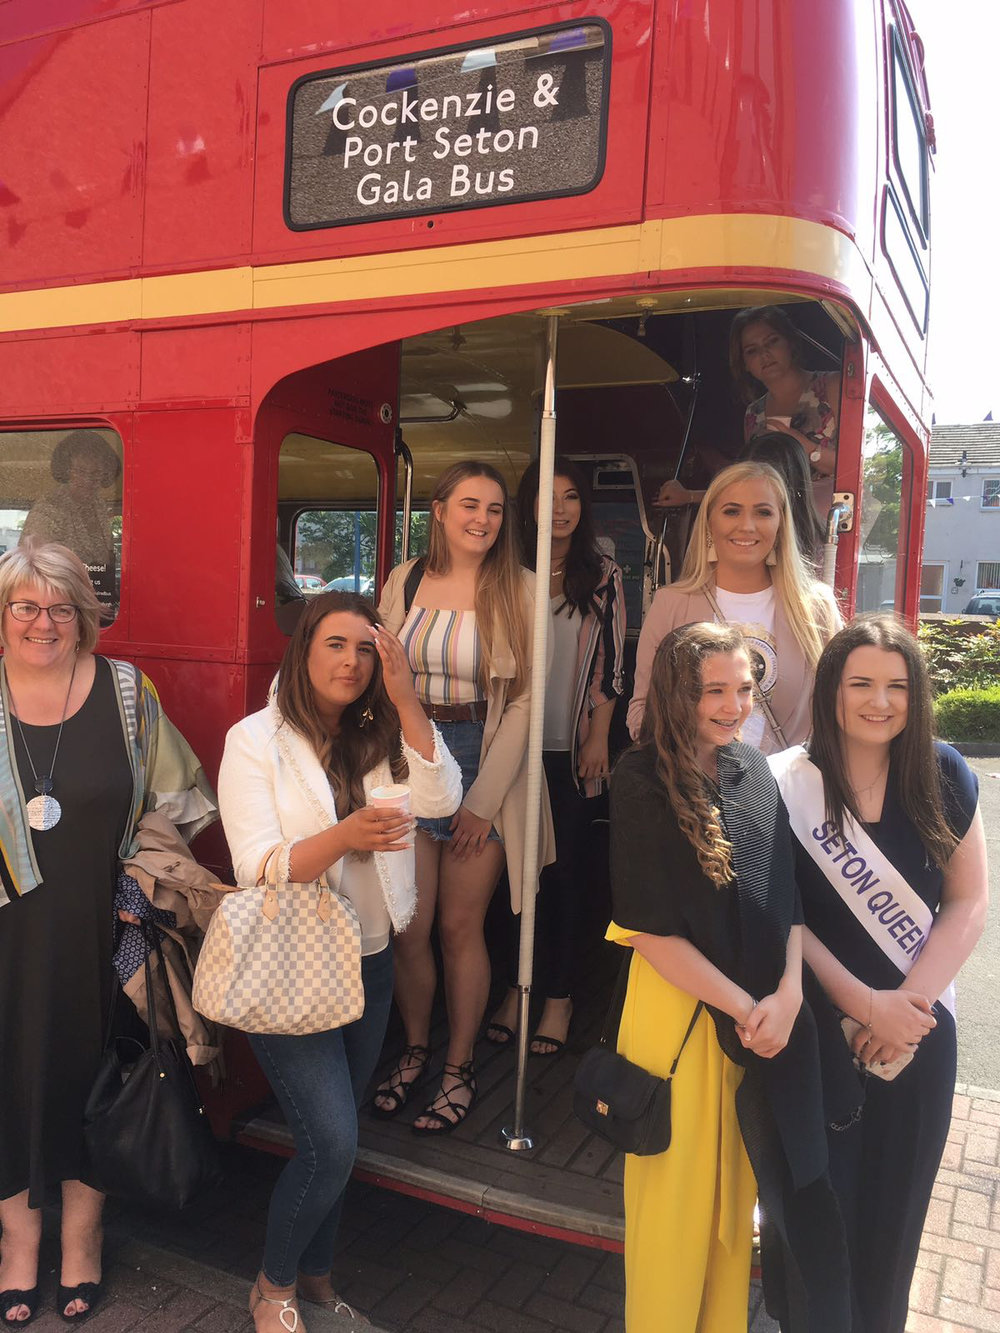 Some previous Gala Queens... The bus was a surprise for them.  Picture: Sam Phipps